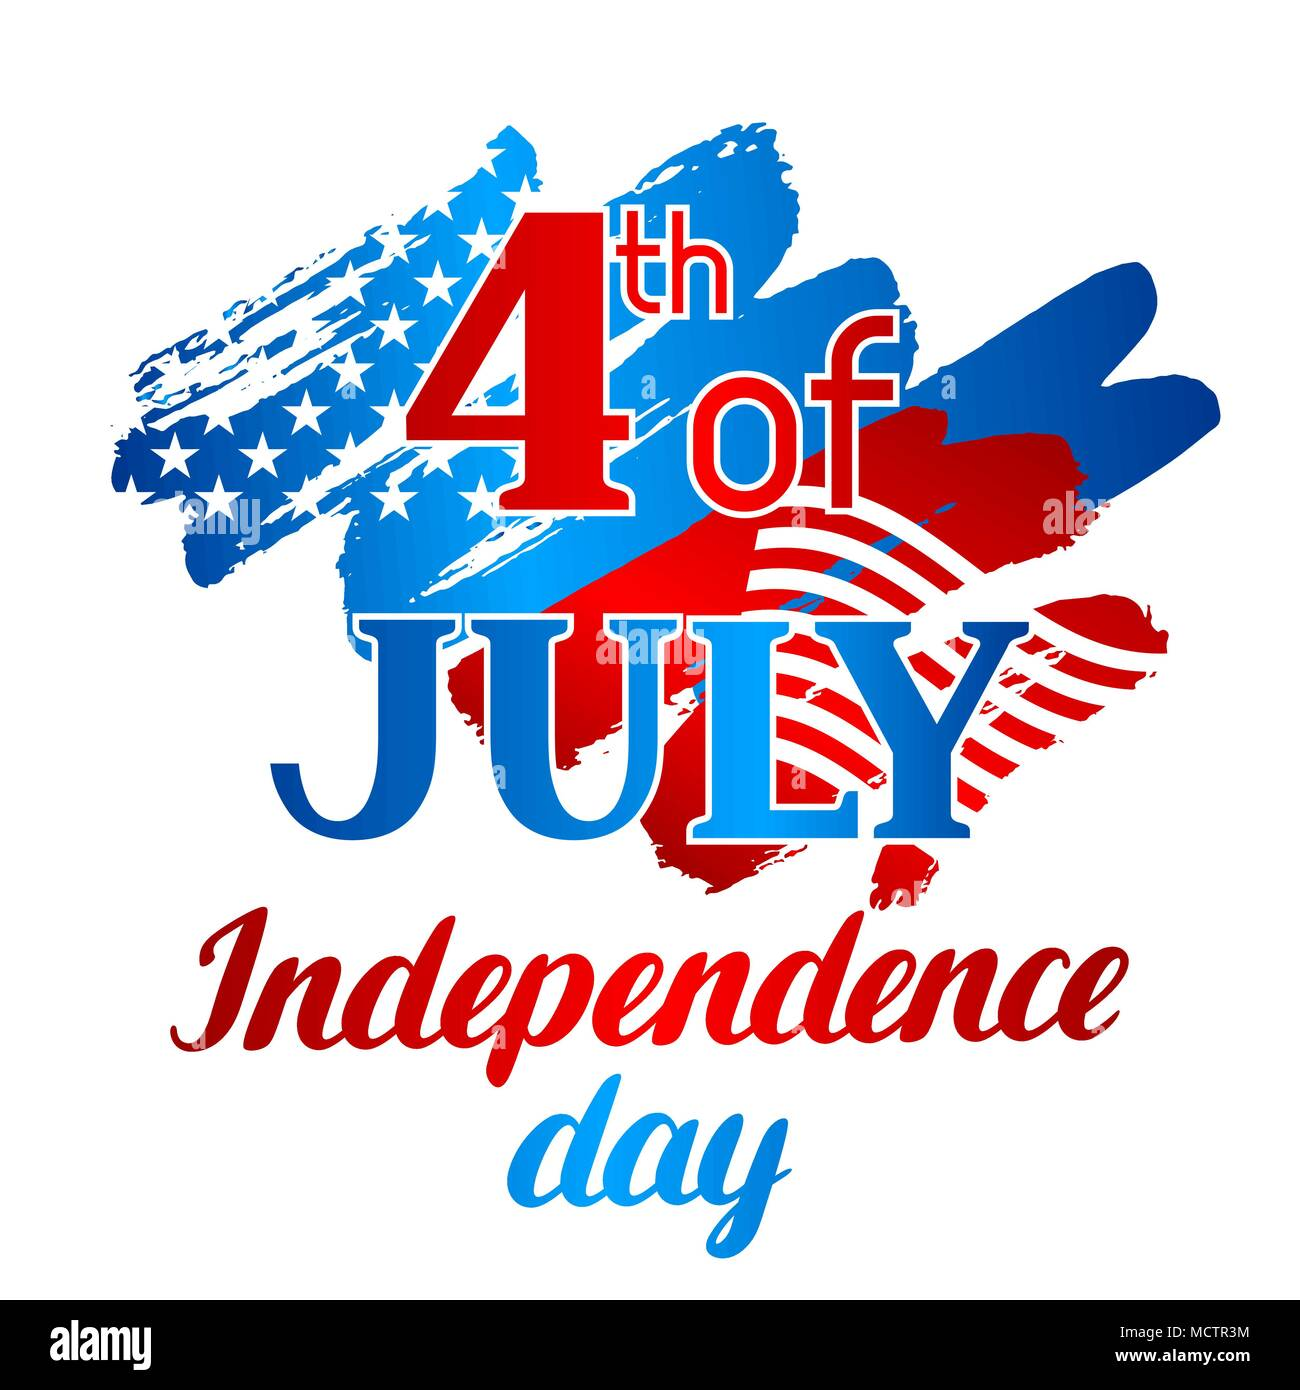 Fourth of july independence day greeting card american patriotic fourth of july independence day greeting card american patriotic illustration m4hsunfo